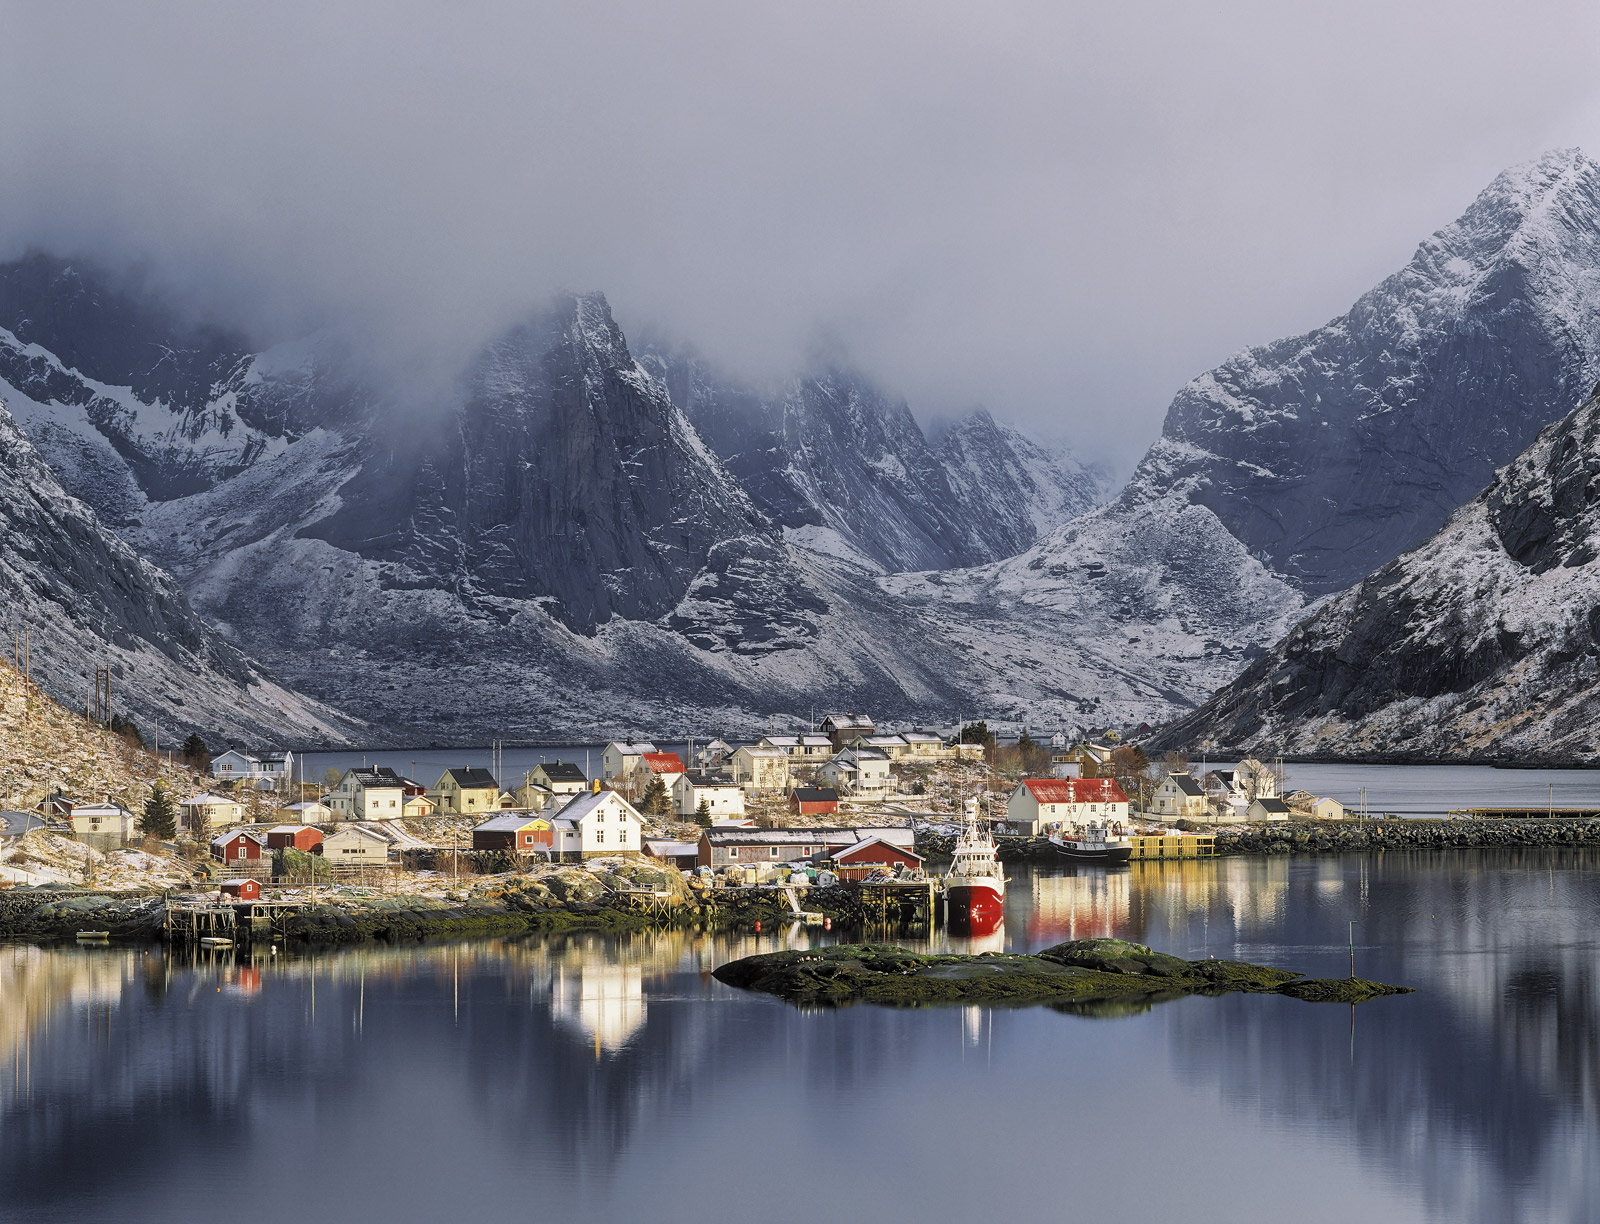 The gloom and blue mood conveyed by the oppressively heavy clouds glowering over the sunlit harbour of Reine was in wonderful...